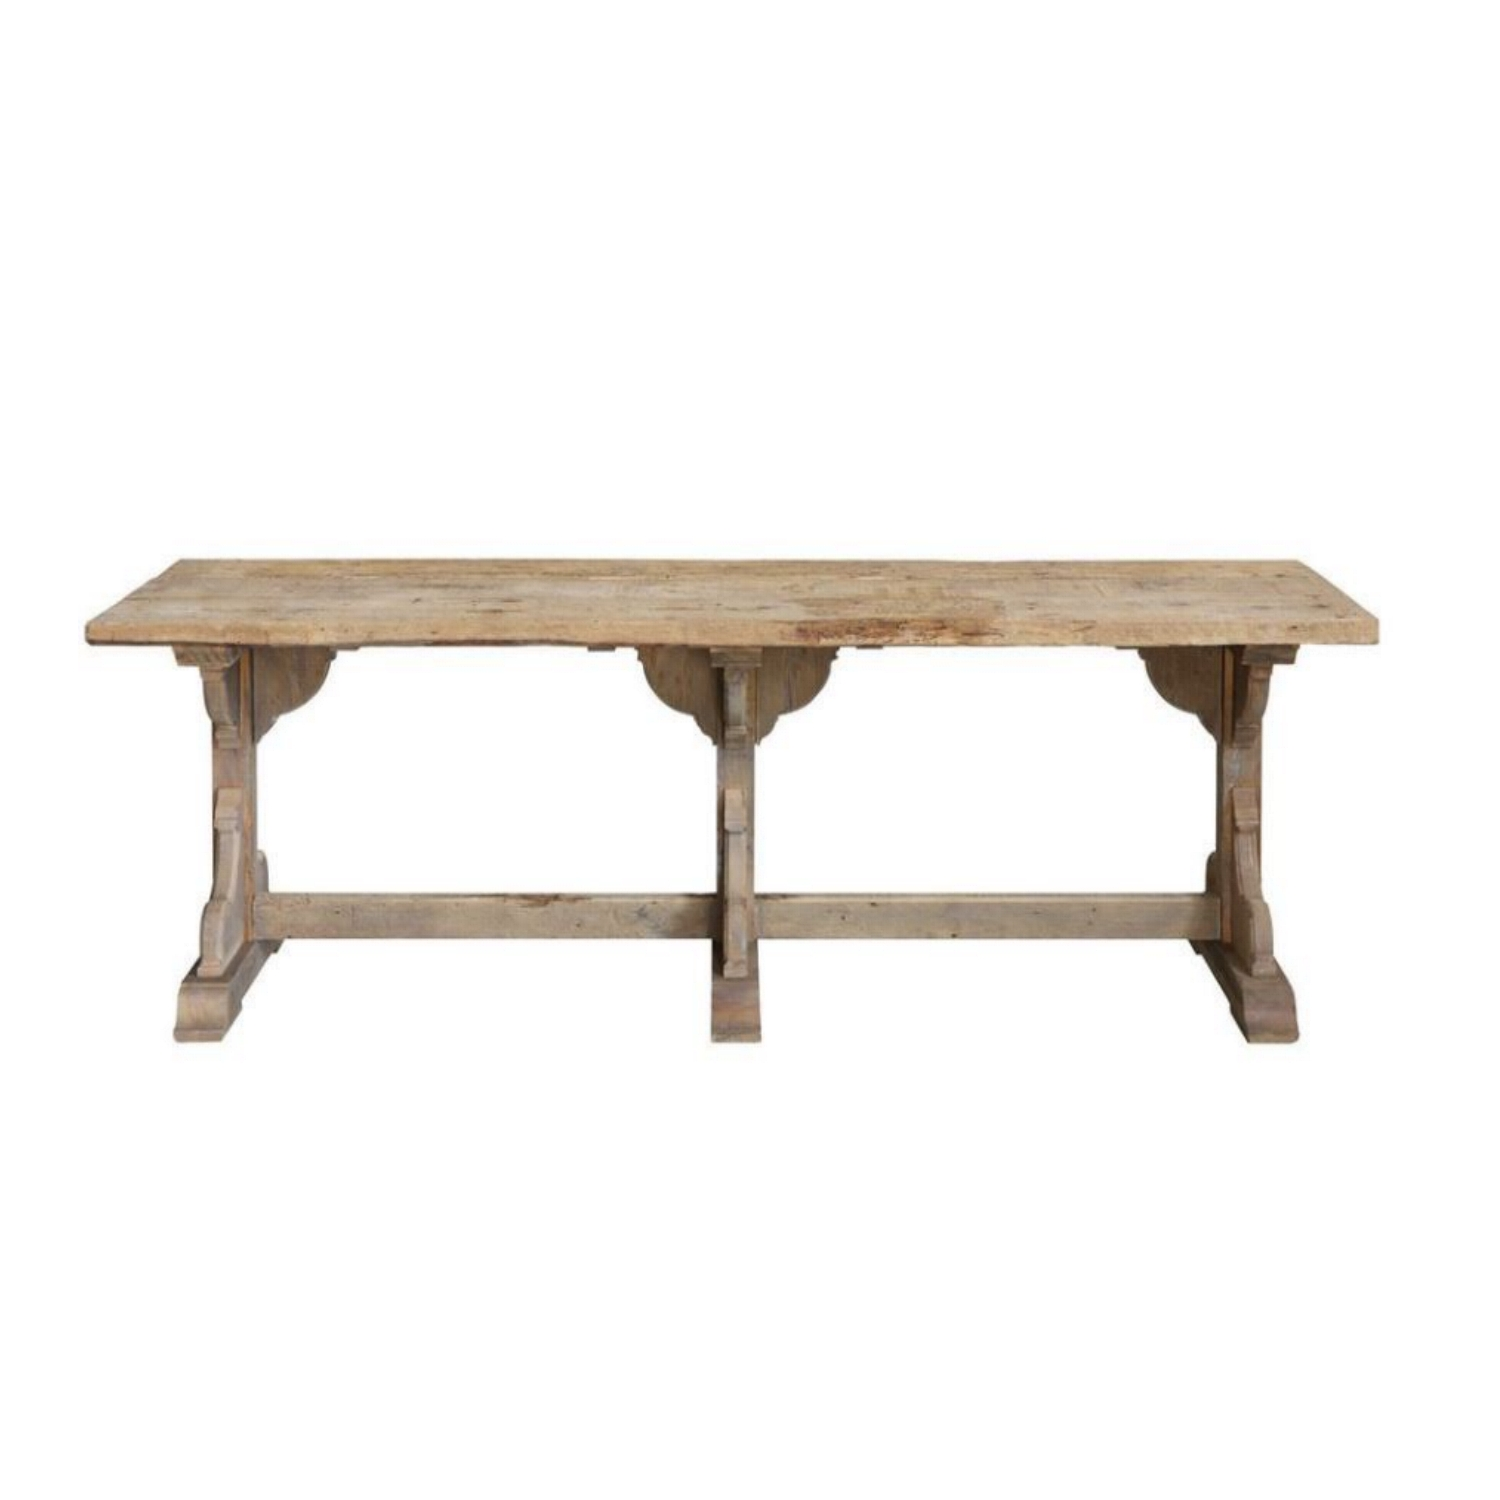 Recycled or Upcycled Wood Trestle Kitchen Table Old French Country Style